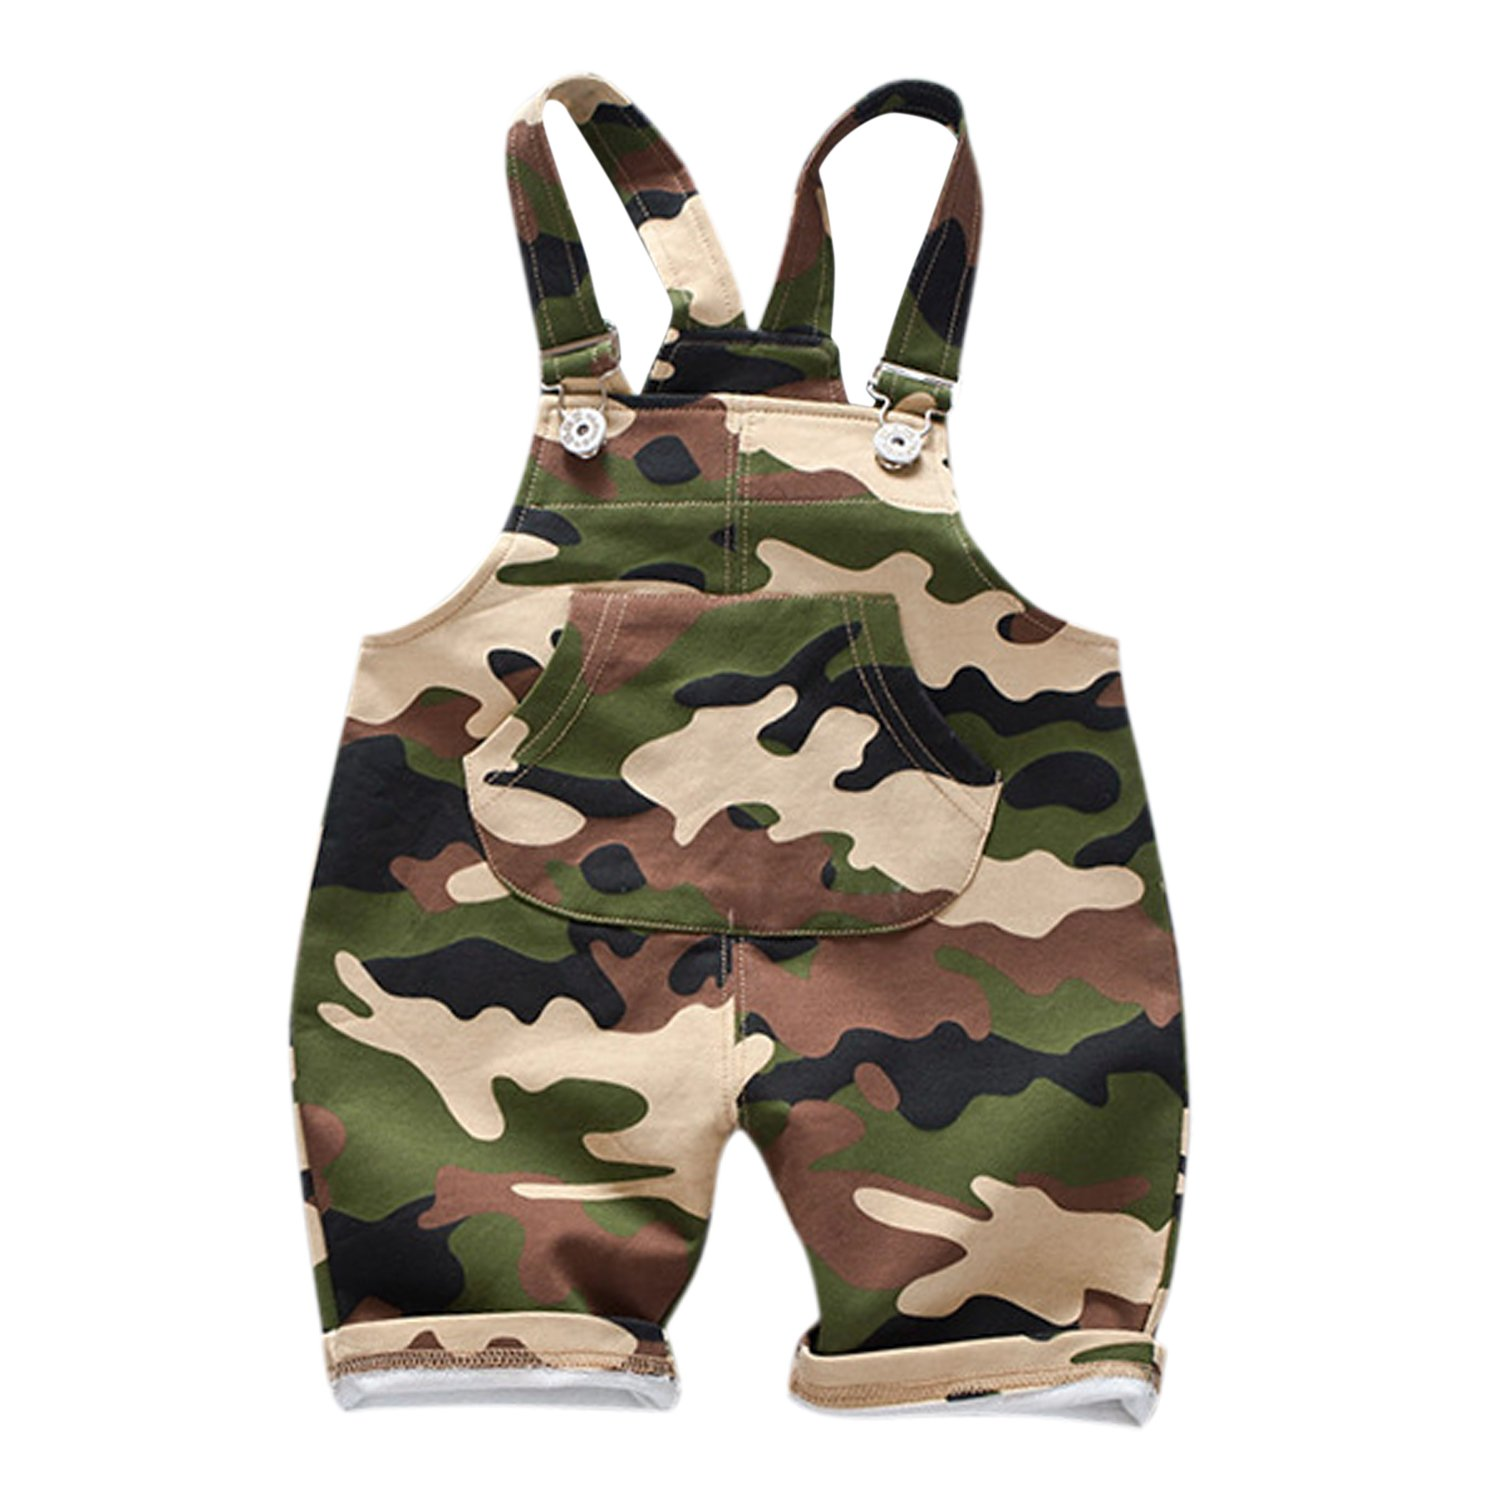 Evelin LEE Baby Boys Cute Camo Bib Pants Sleeveless Romper Jumpsuits Overalls 05LFA1112-CAZL